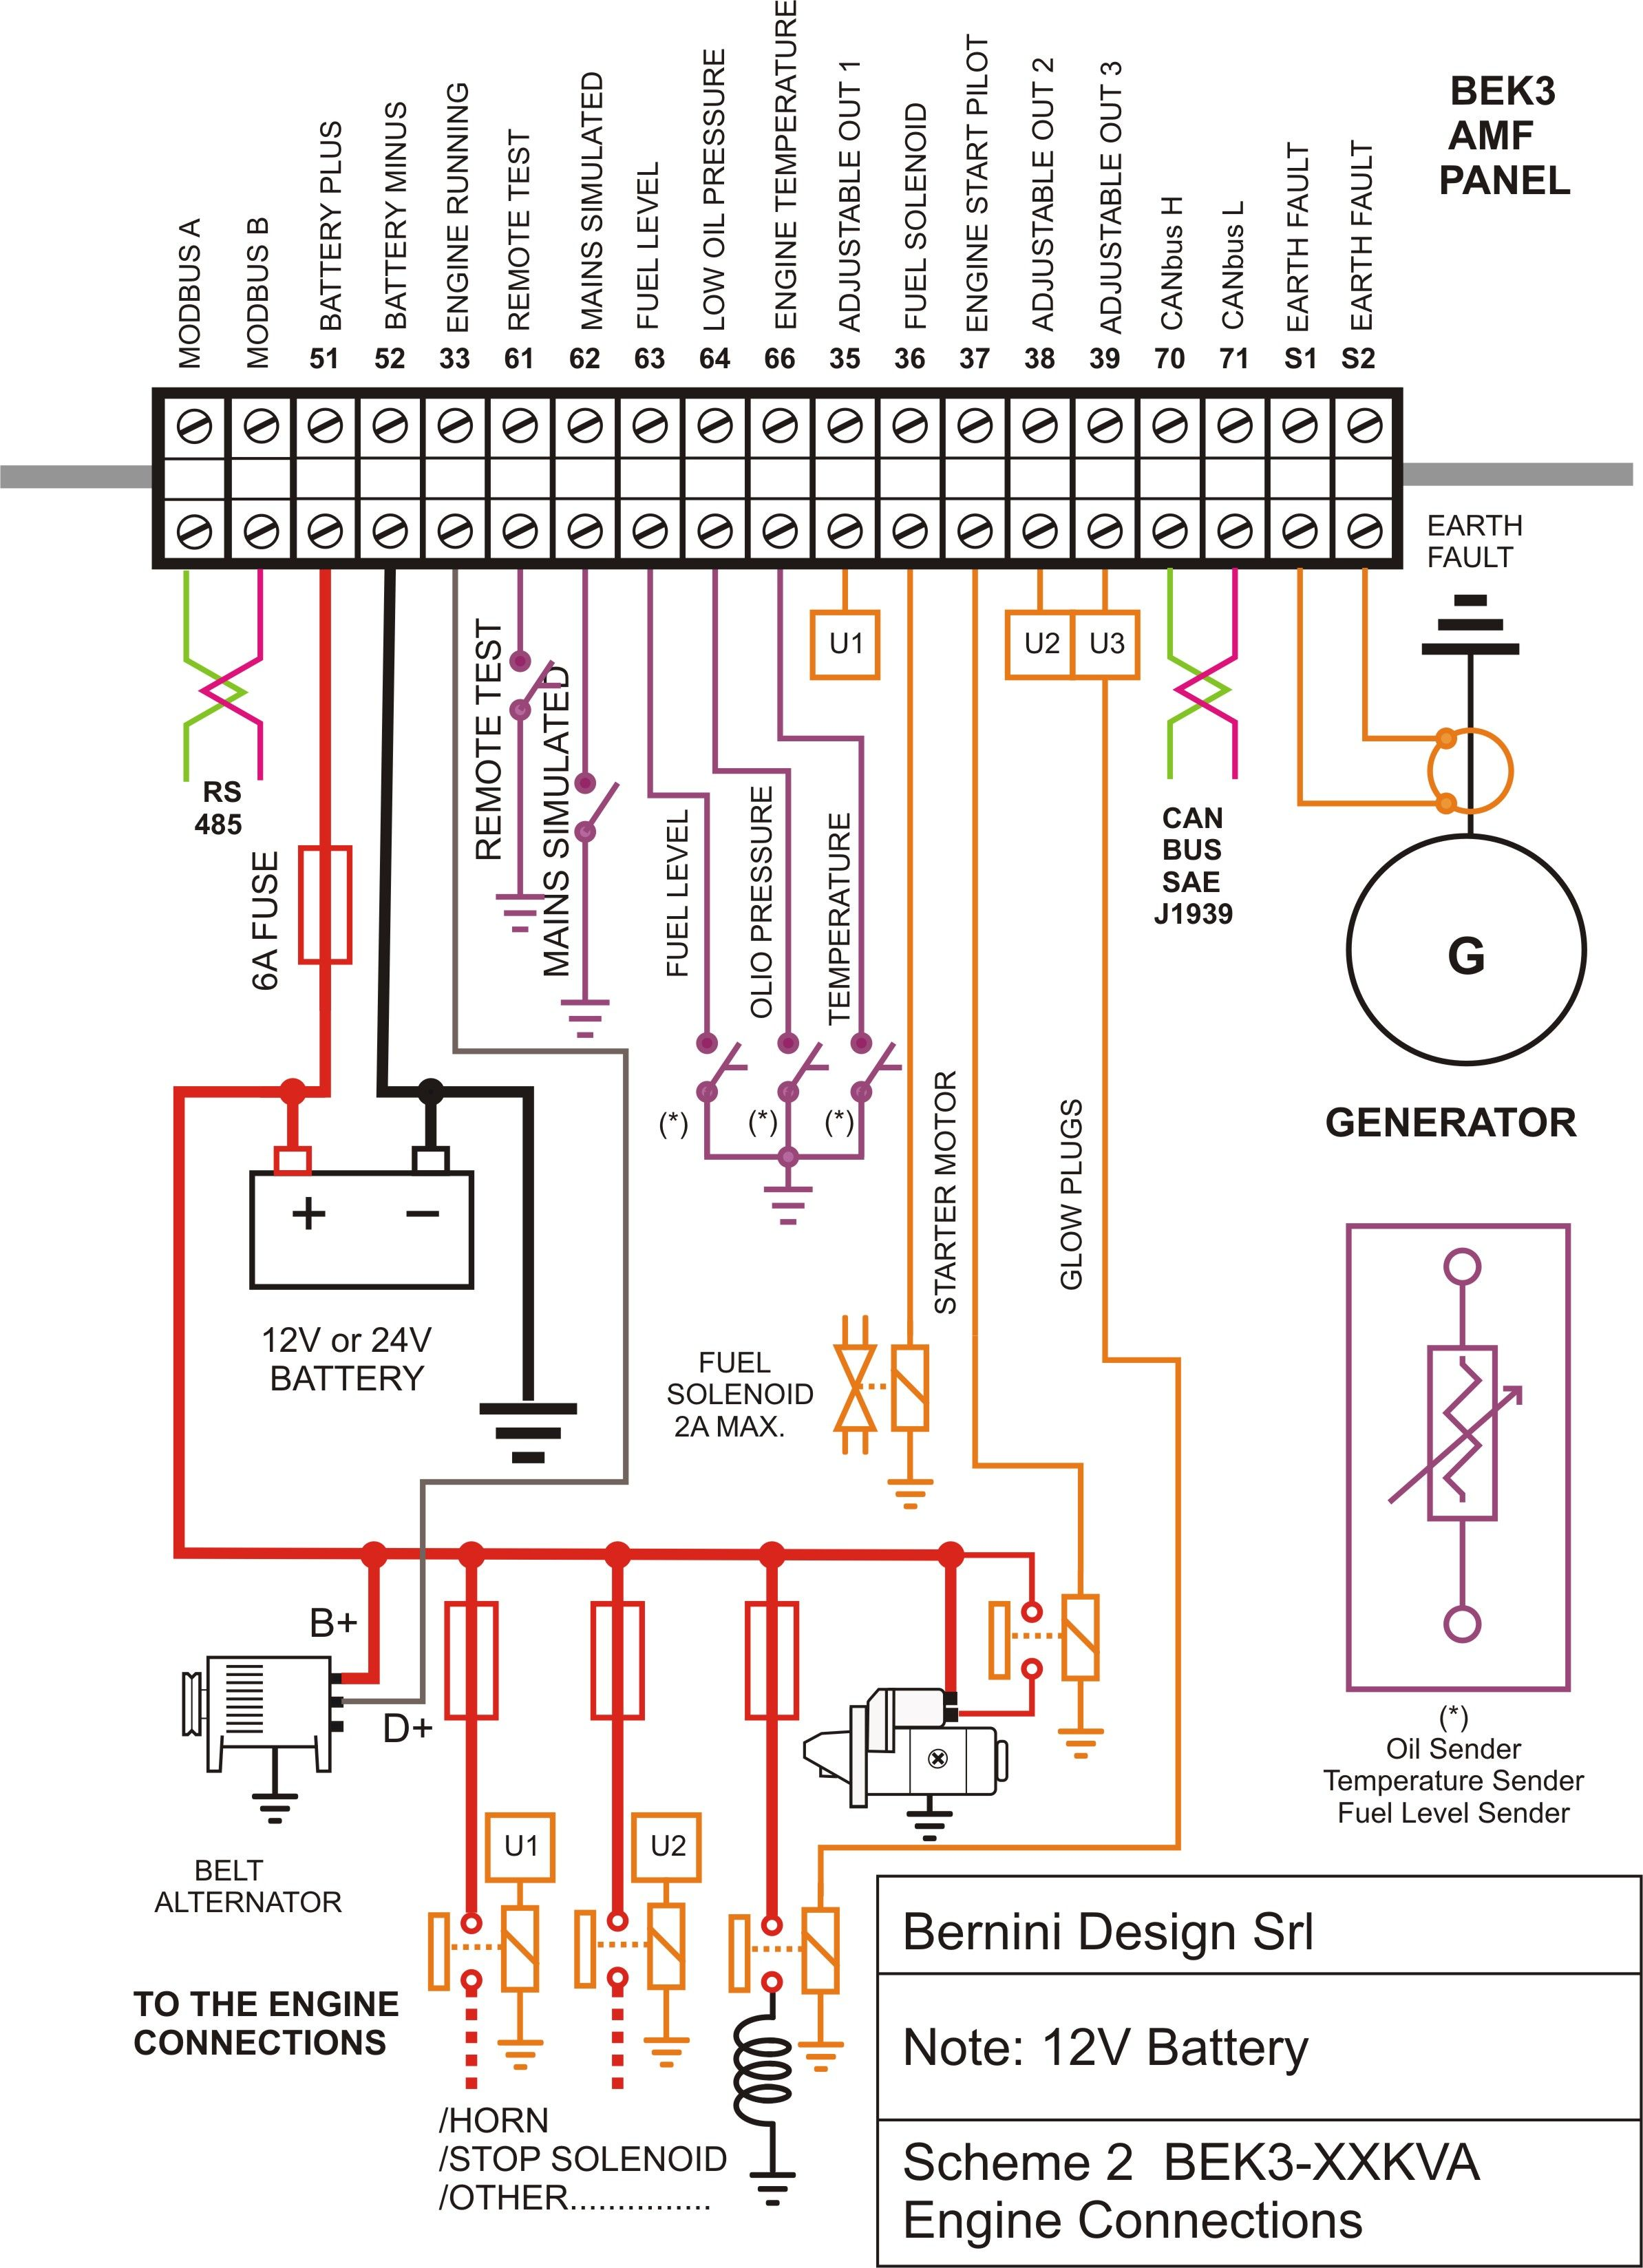 Diesel Generator Control Panel Wiring Diagram Engine Connections Pin